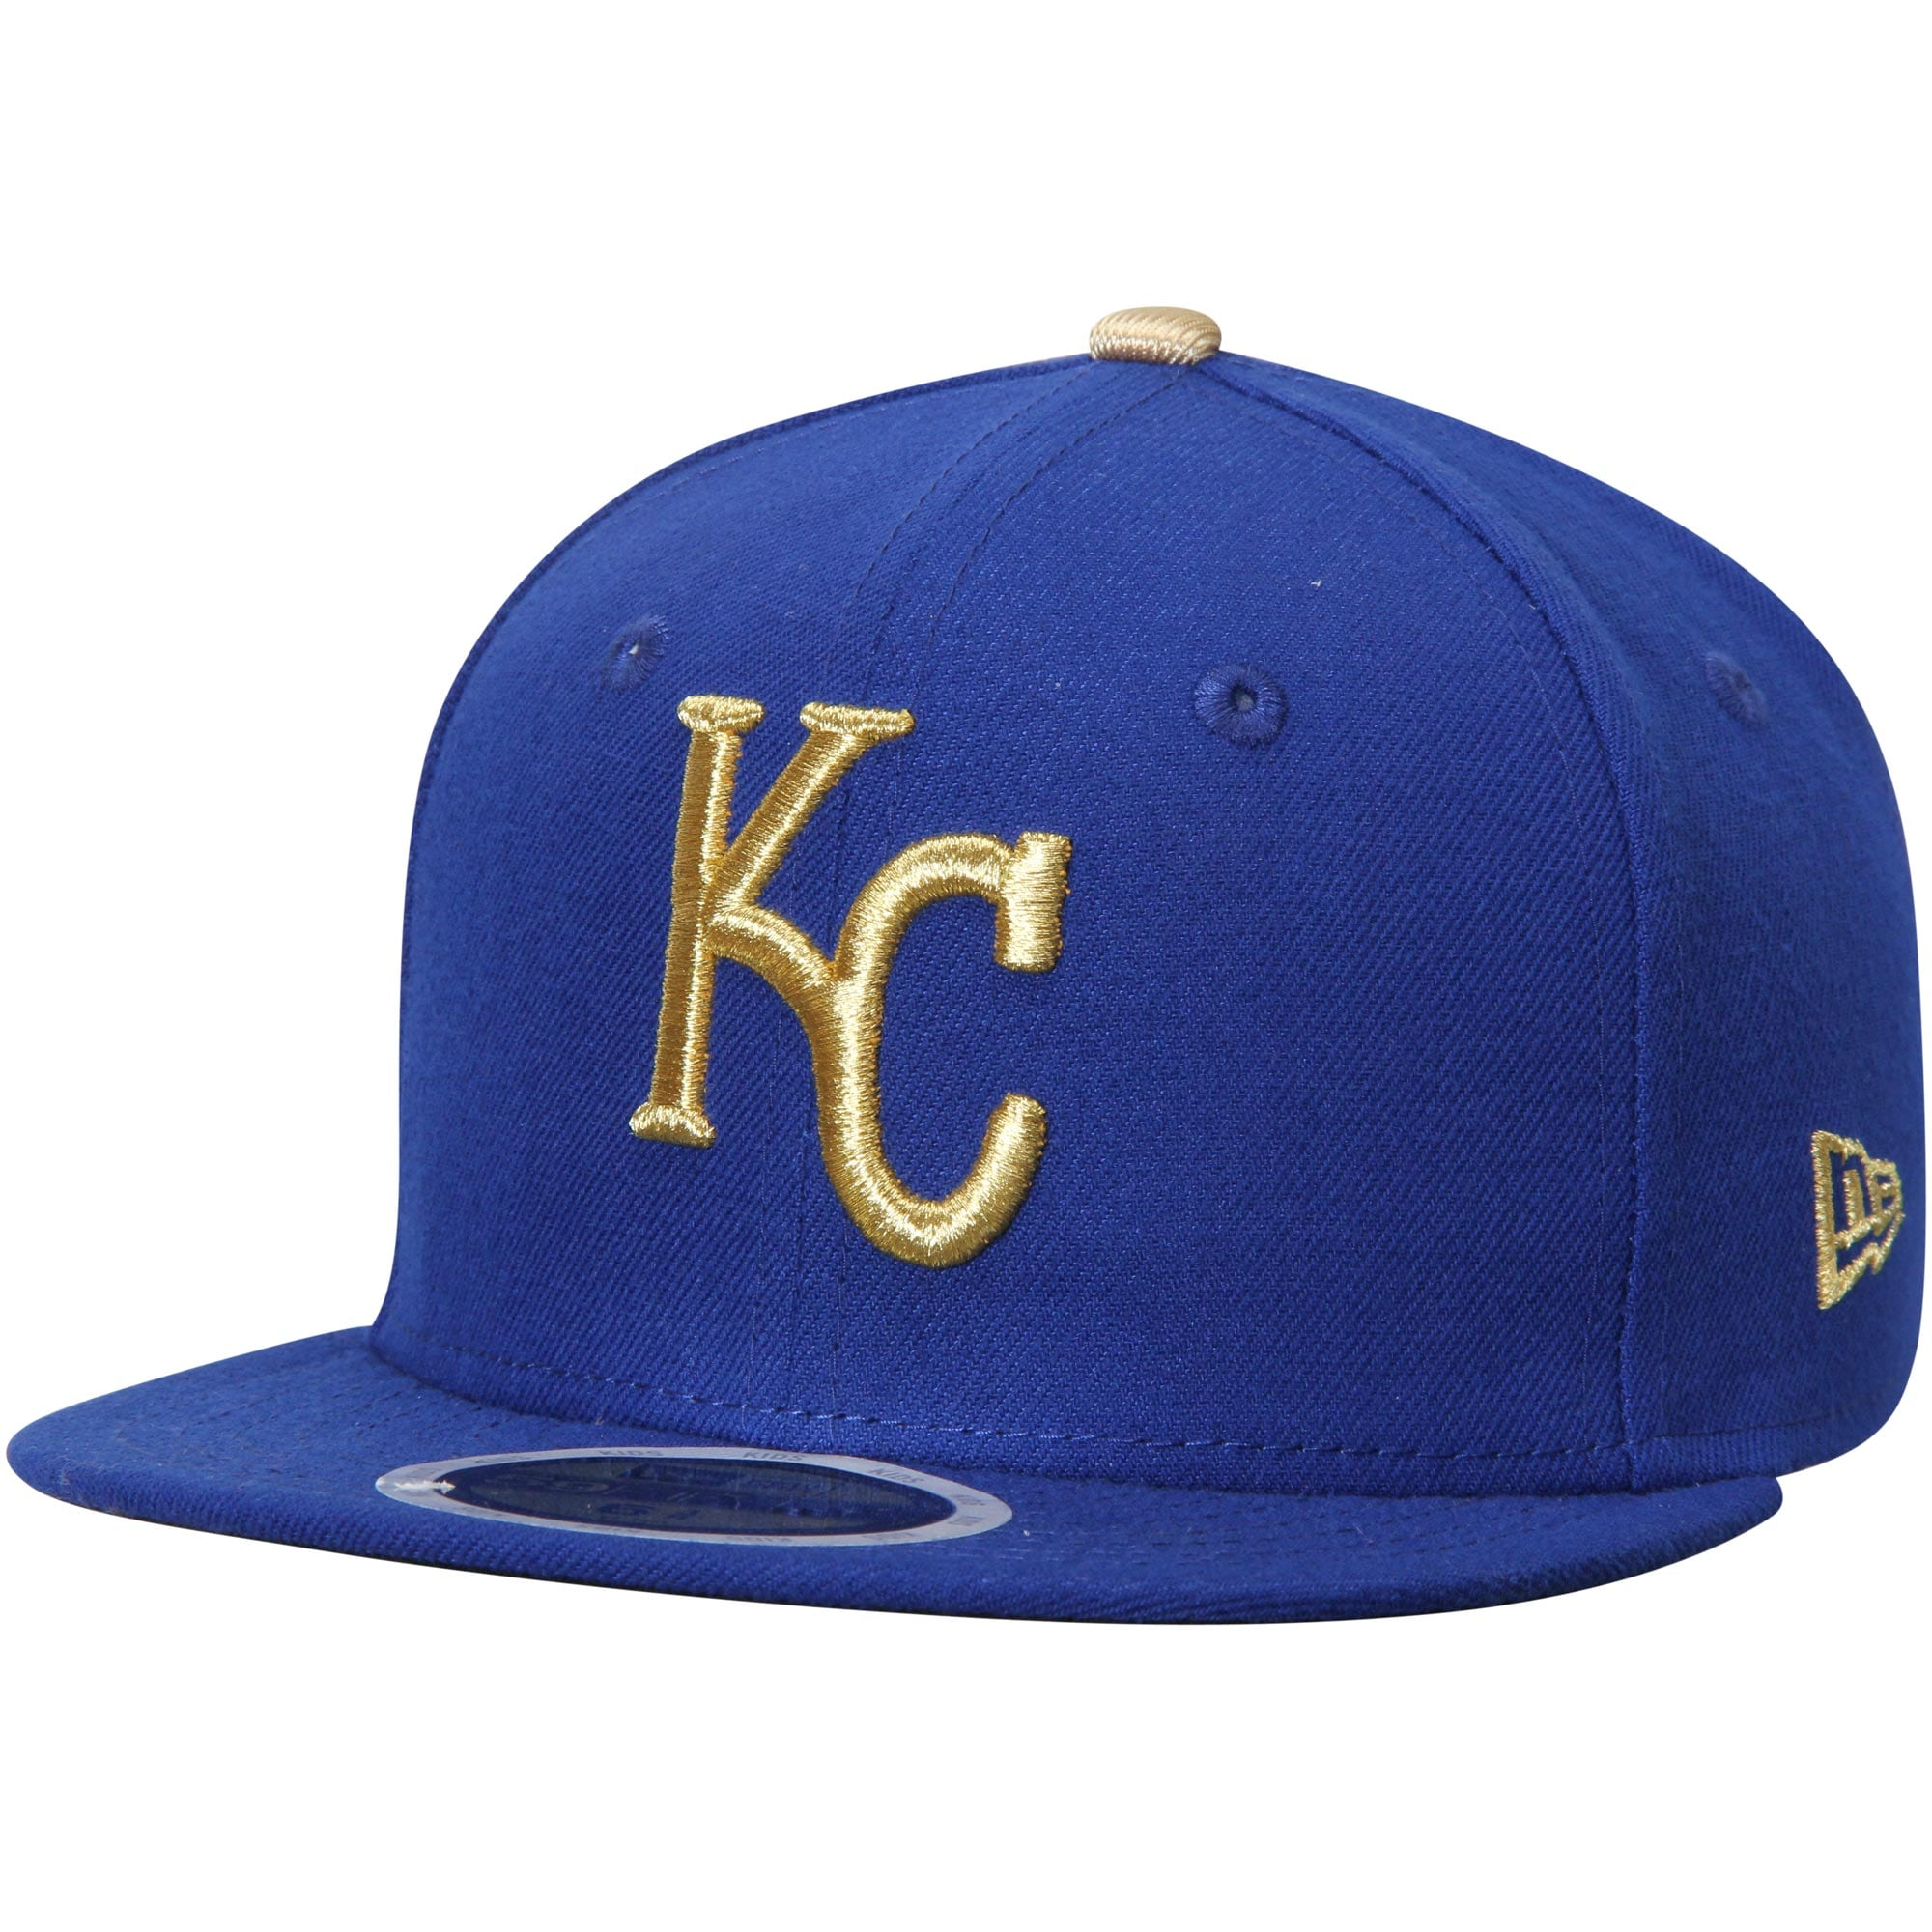 Kansas City Royals New Era Youth Authentic Collection On-Field Alternate 59FIFTY Fitted Hat - Royal